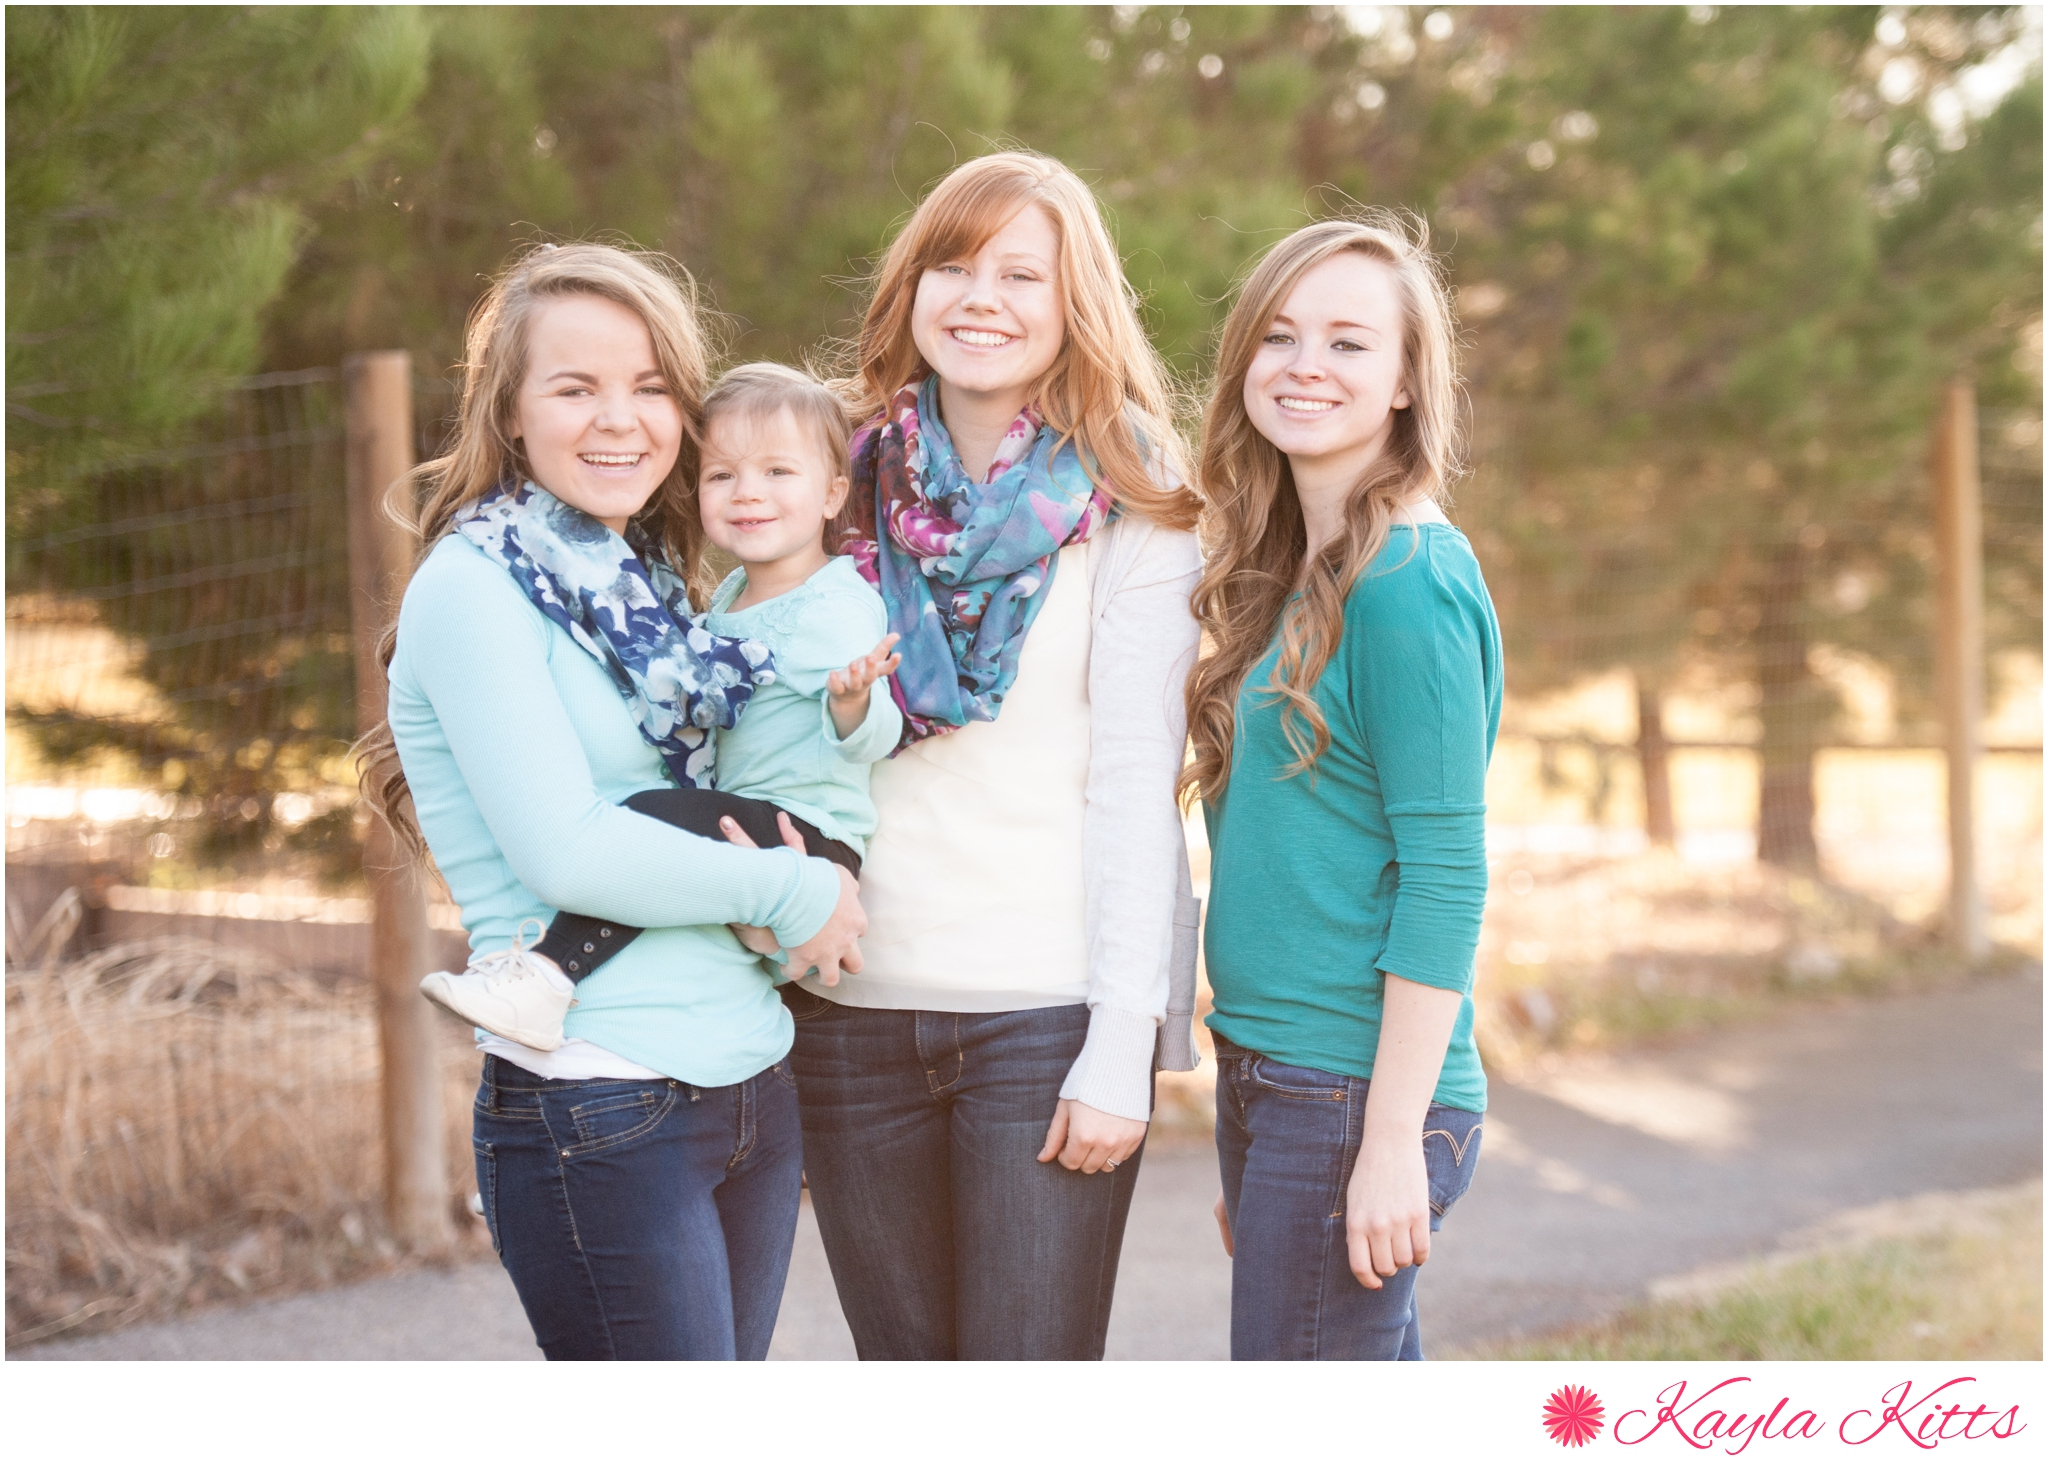 kayla kitts photography - baca family 2014-024.jpg